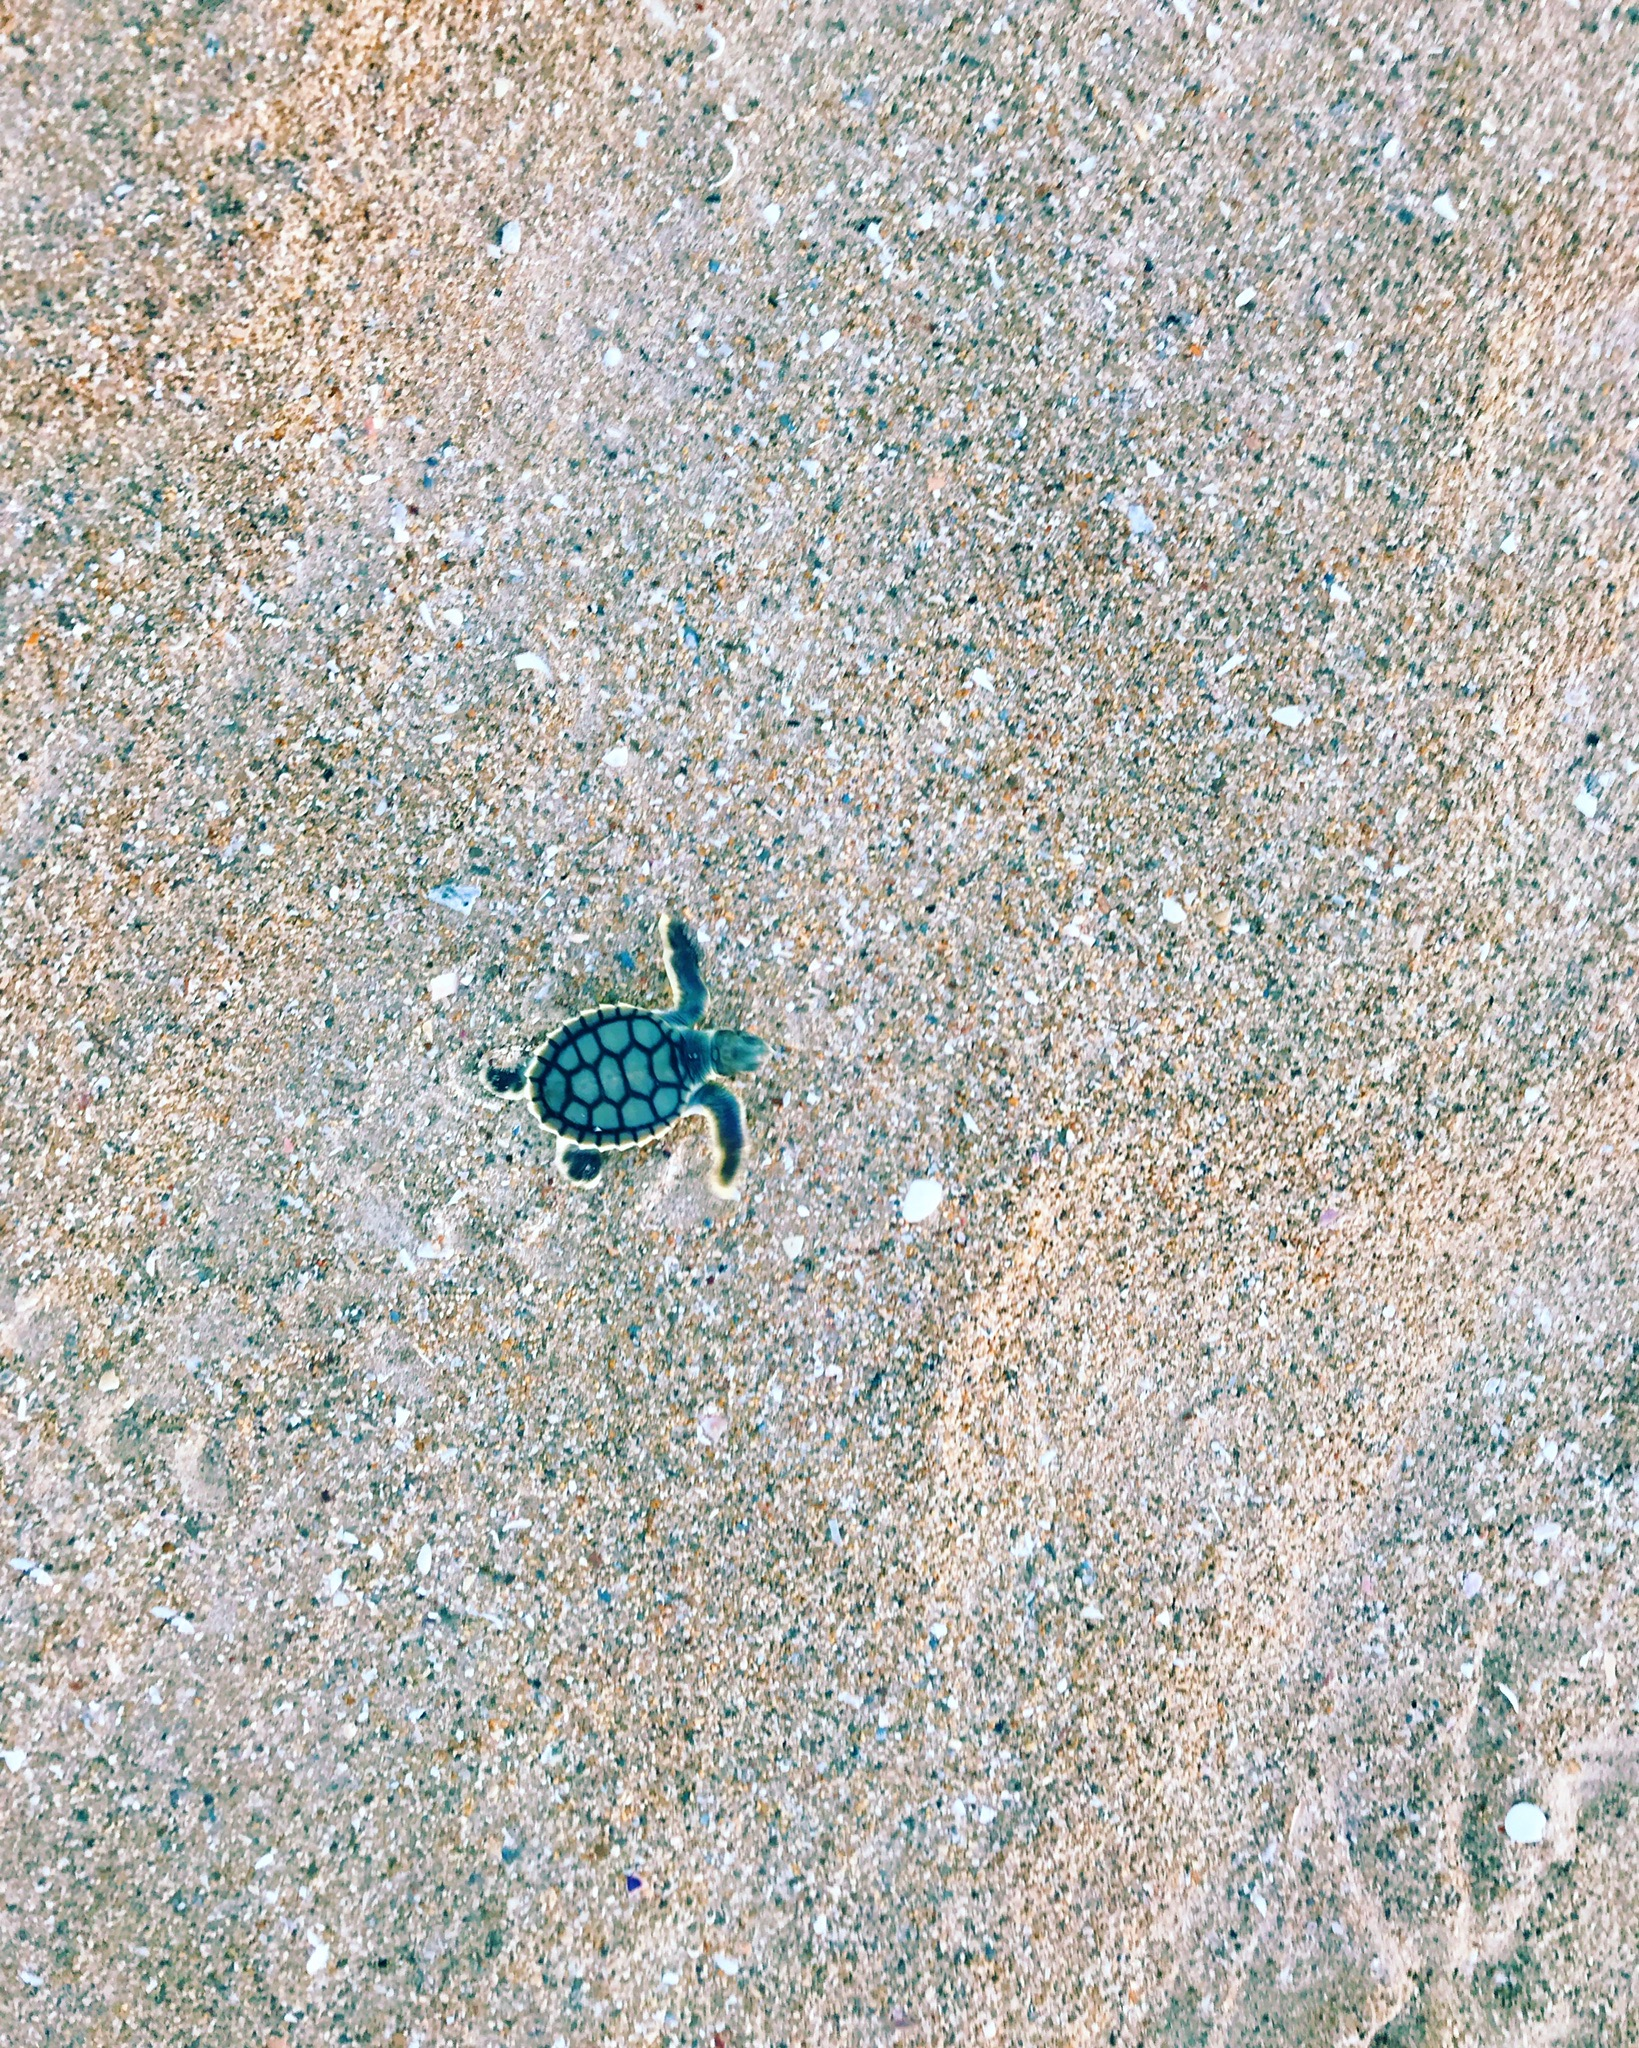 A baby flatback sea turtle makes it's way to the sea for the very first time